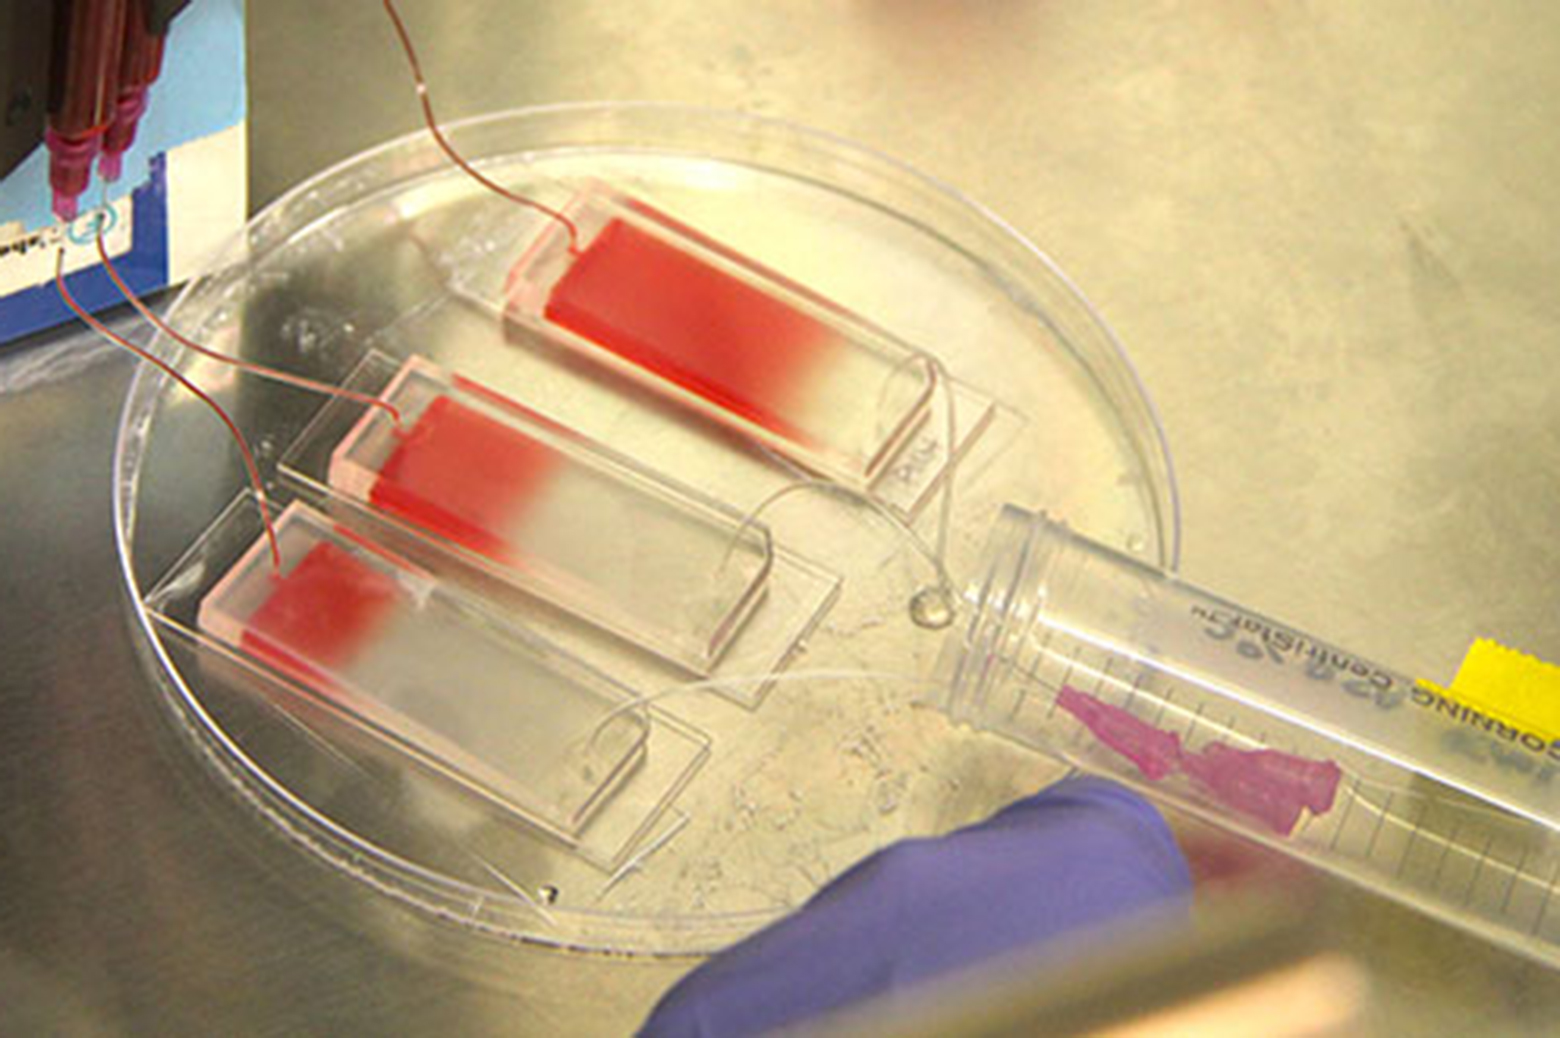 A blood sample is pumped into a microfluidic chip as part of the microfluidic co-culture process